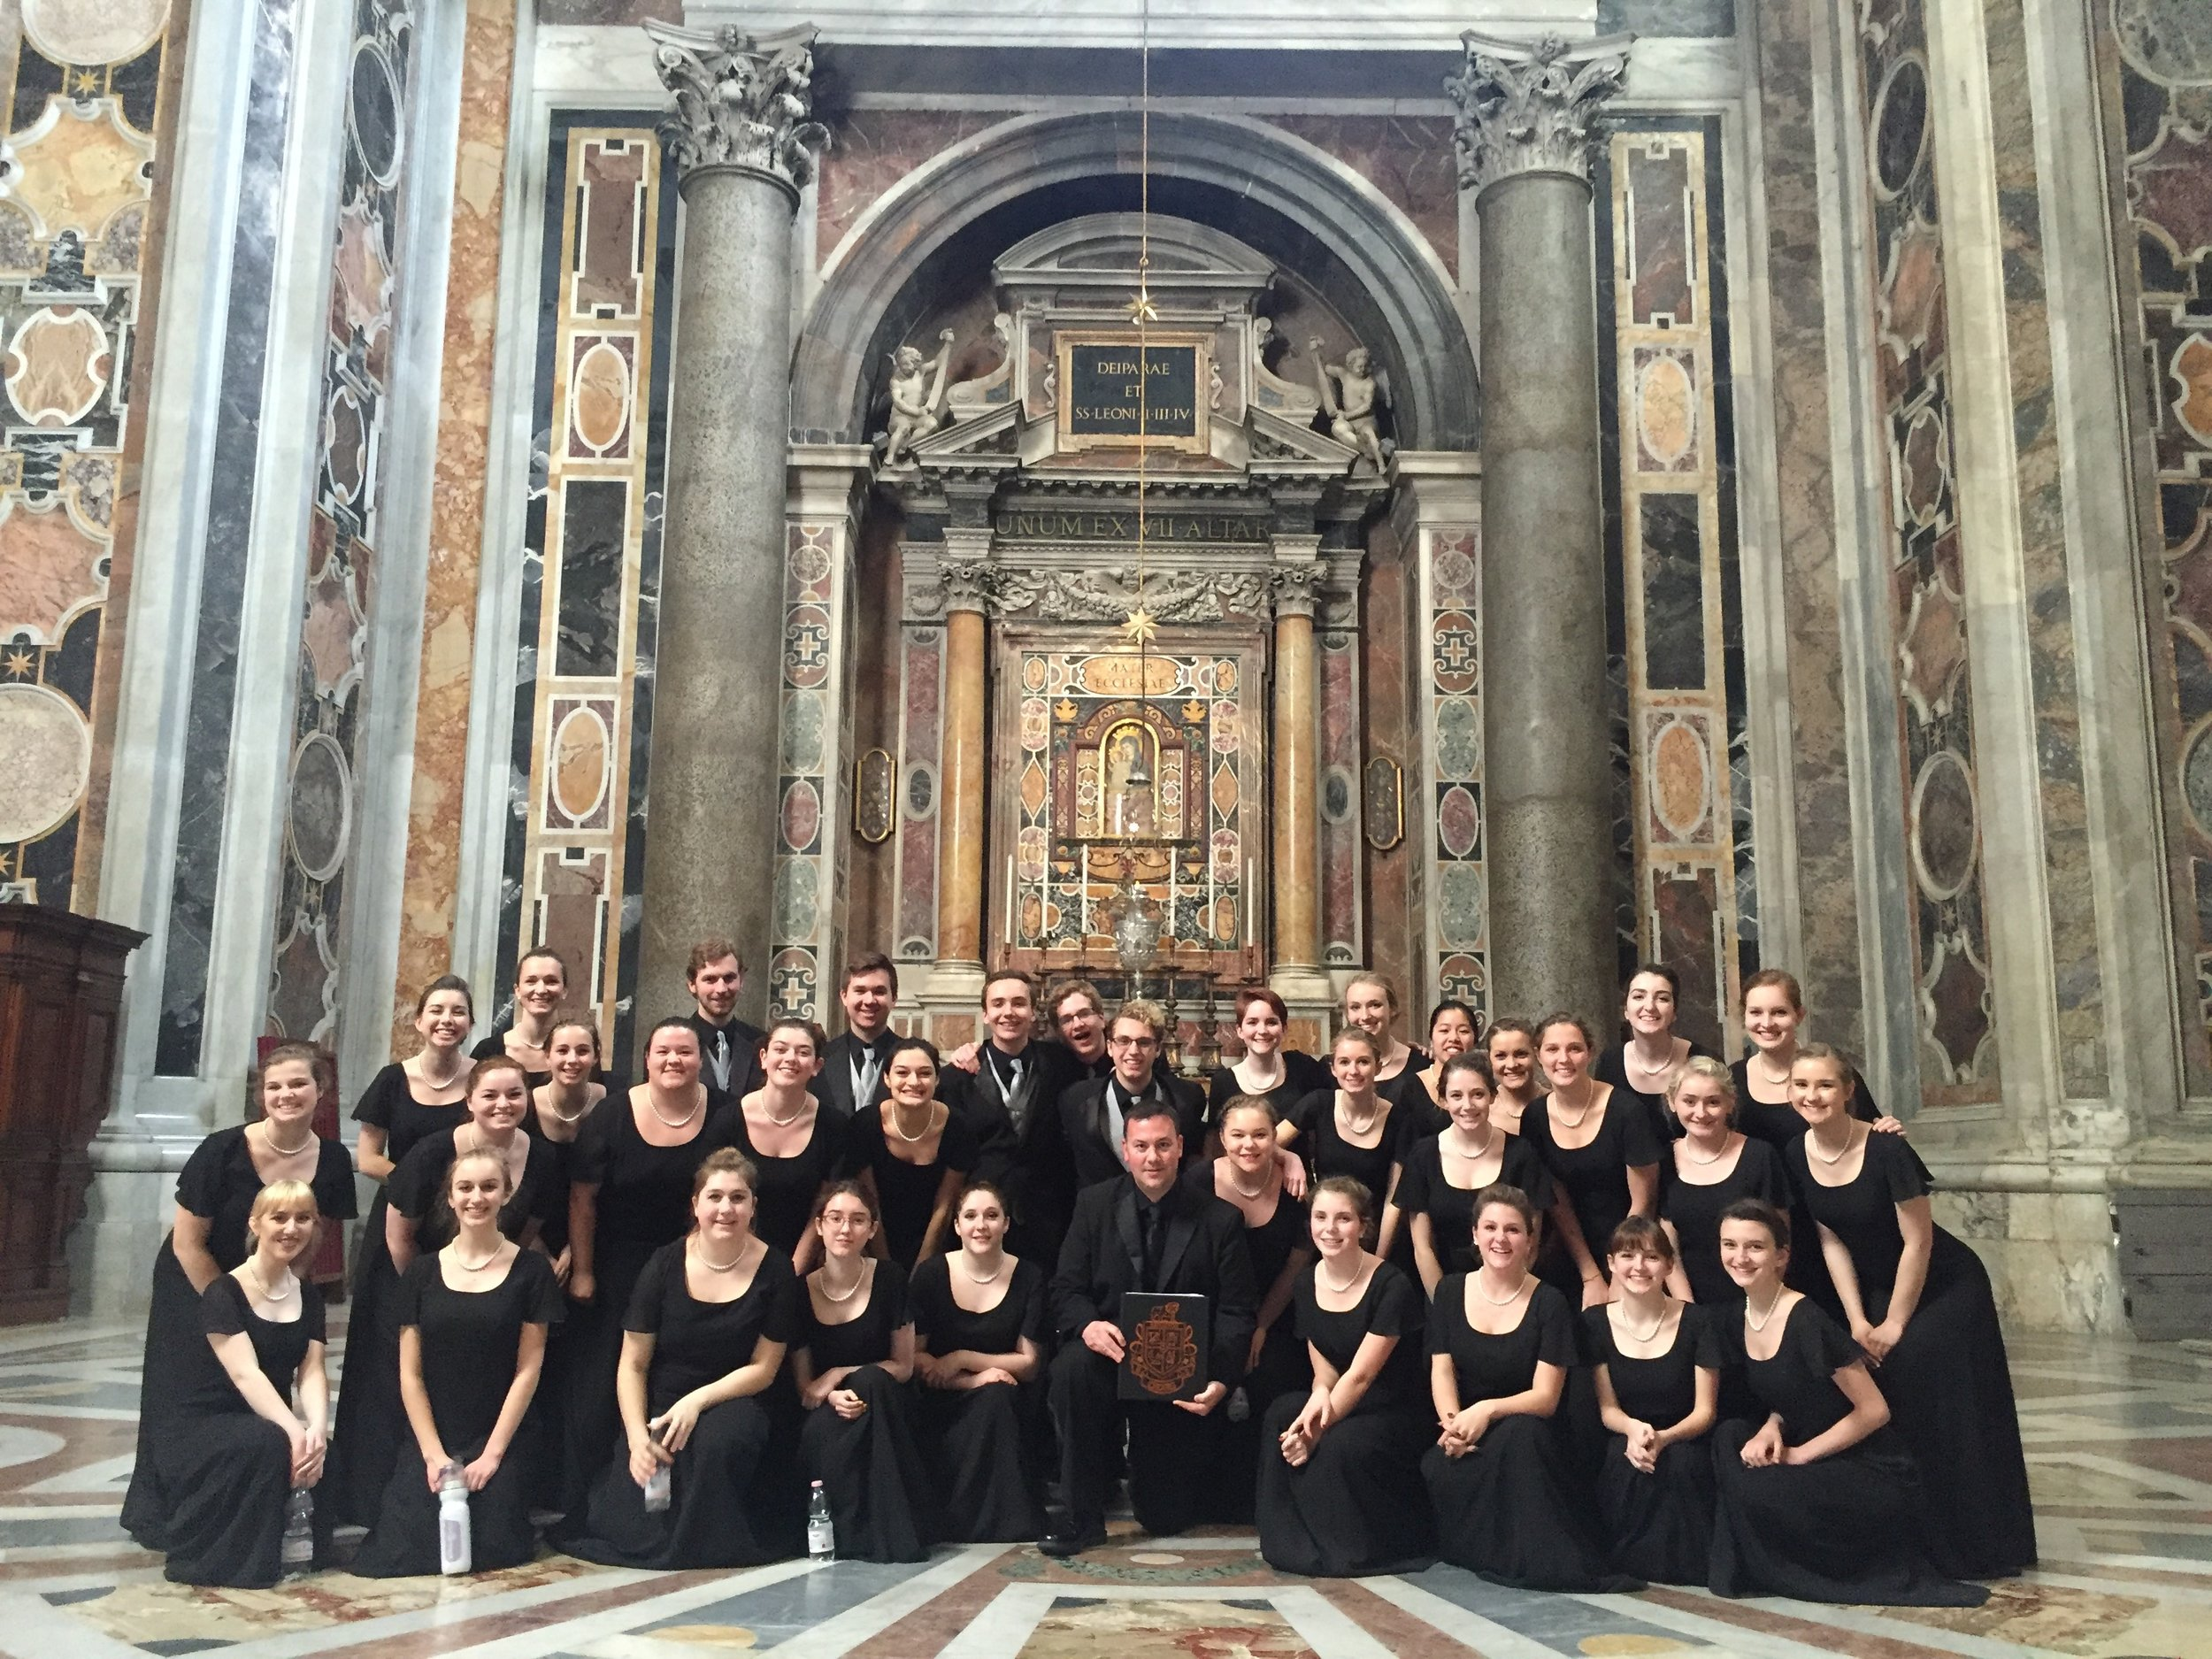 Brighton's Italy Choir at St. Peter's Basilica in Rome!